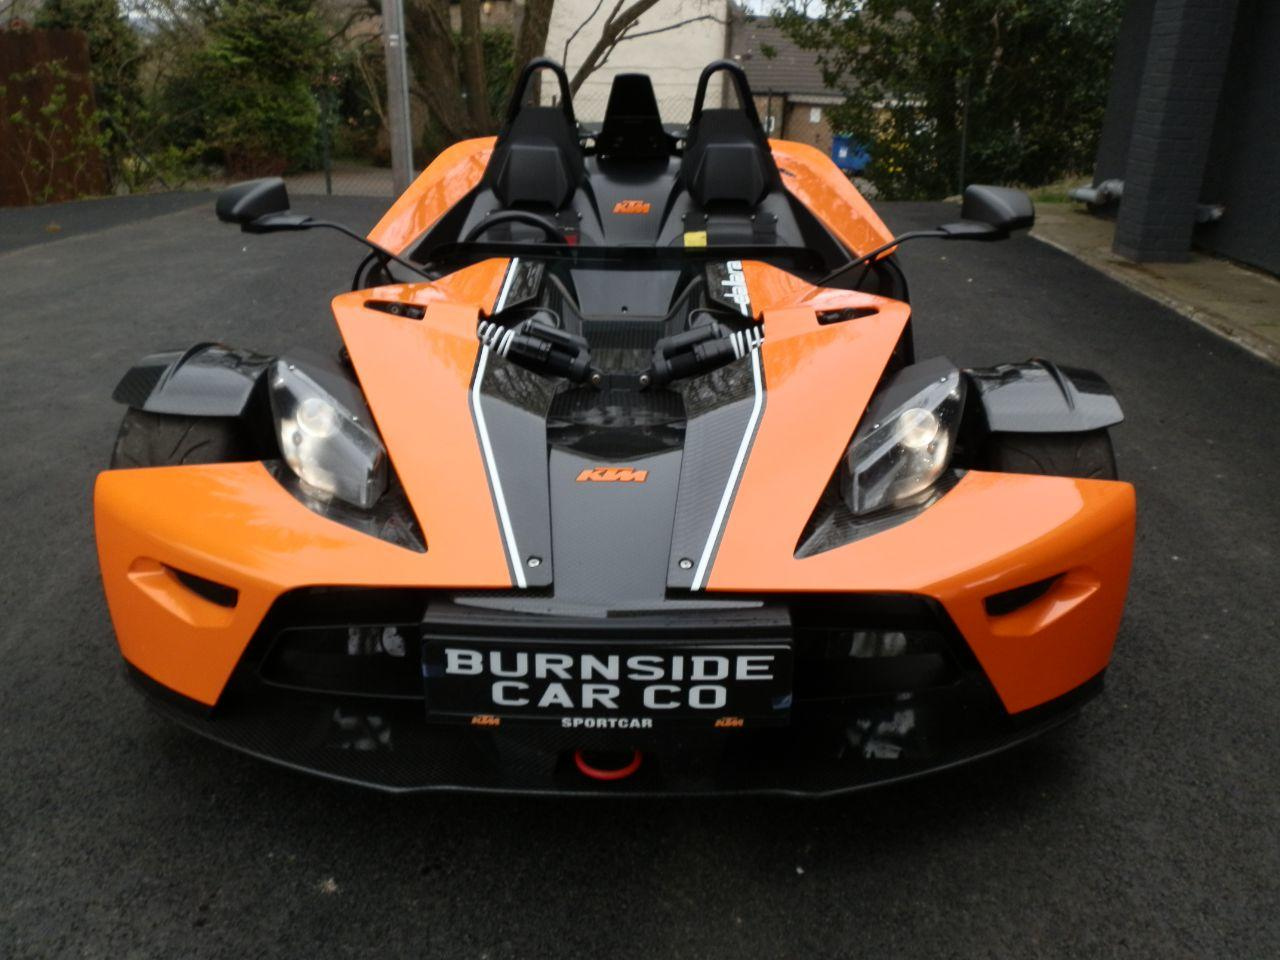 Ktm X-bow 2.0 KTM X-BOW Sports Petrol ORANGE